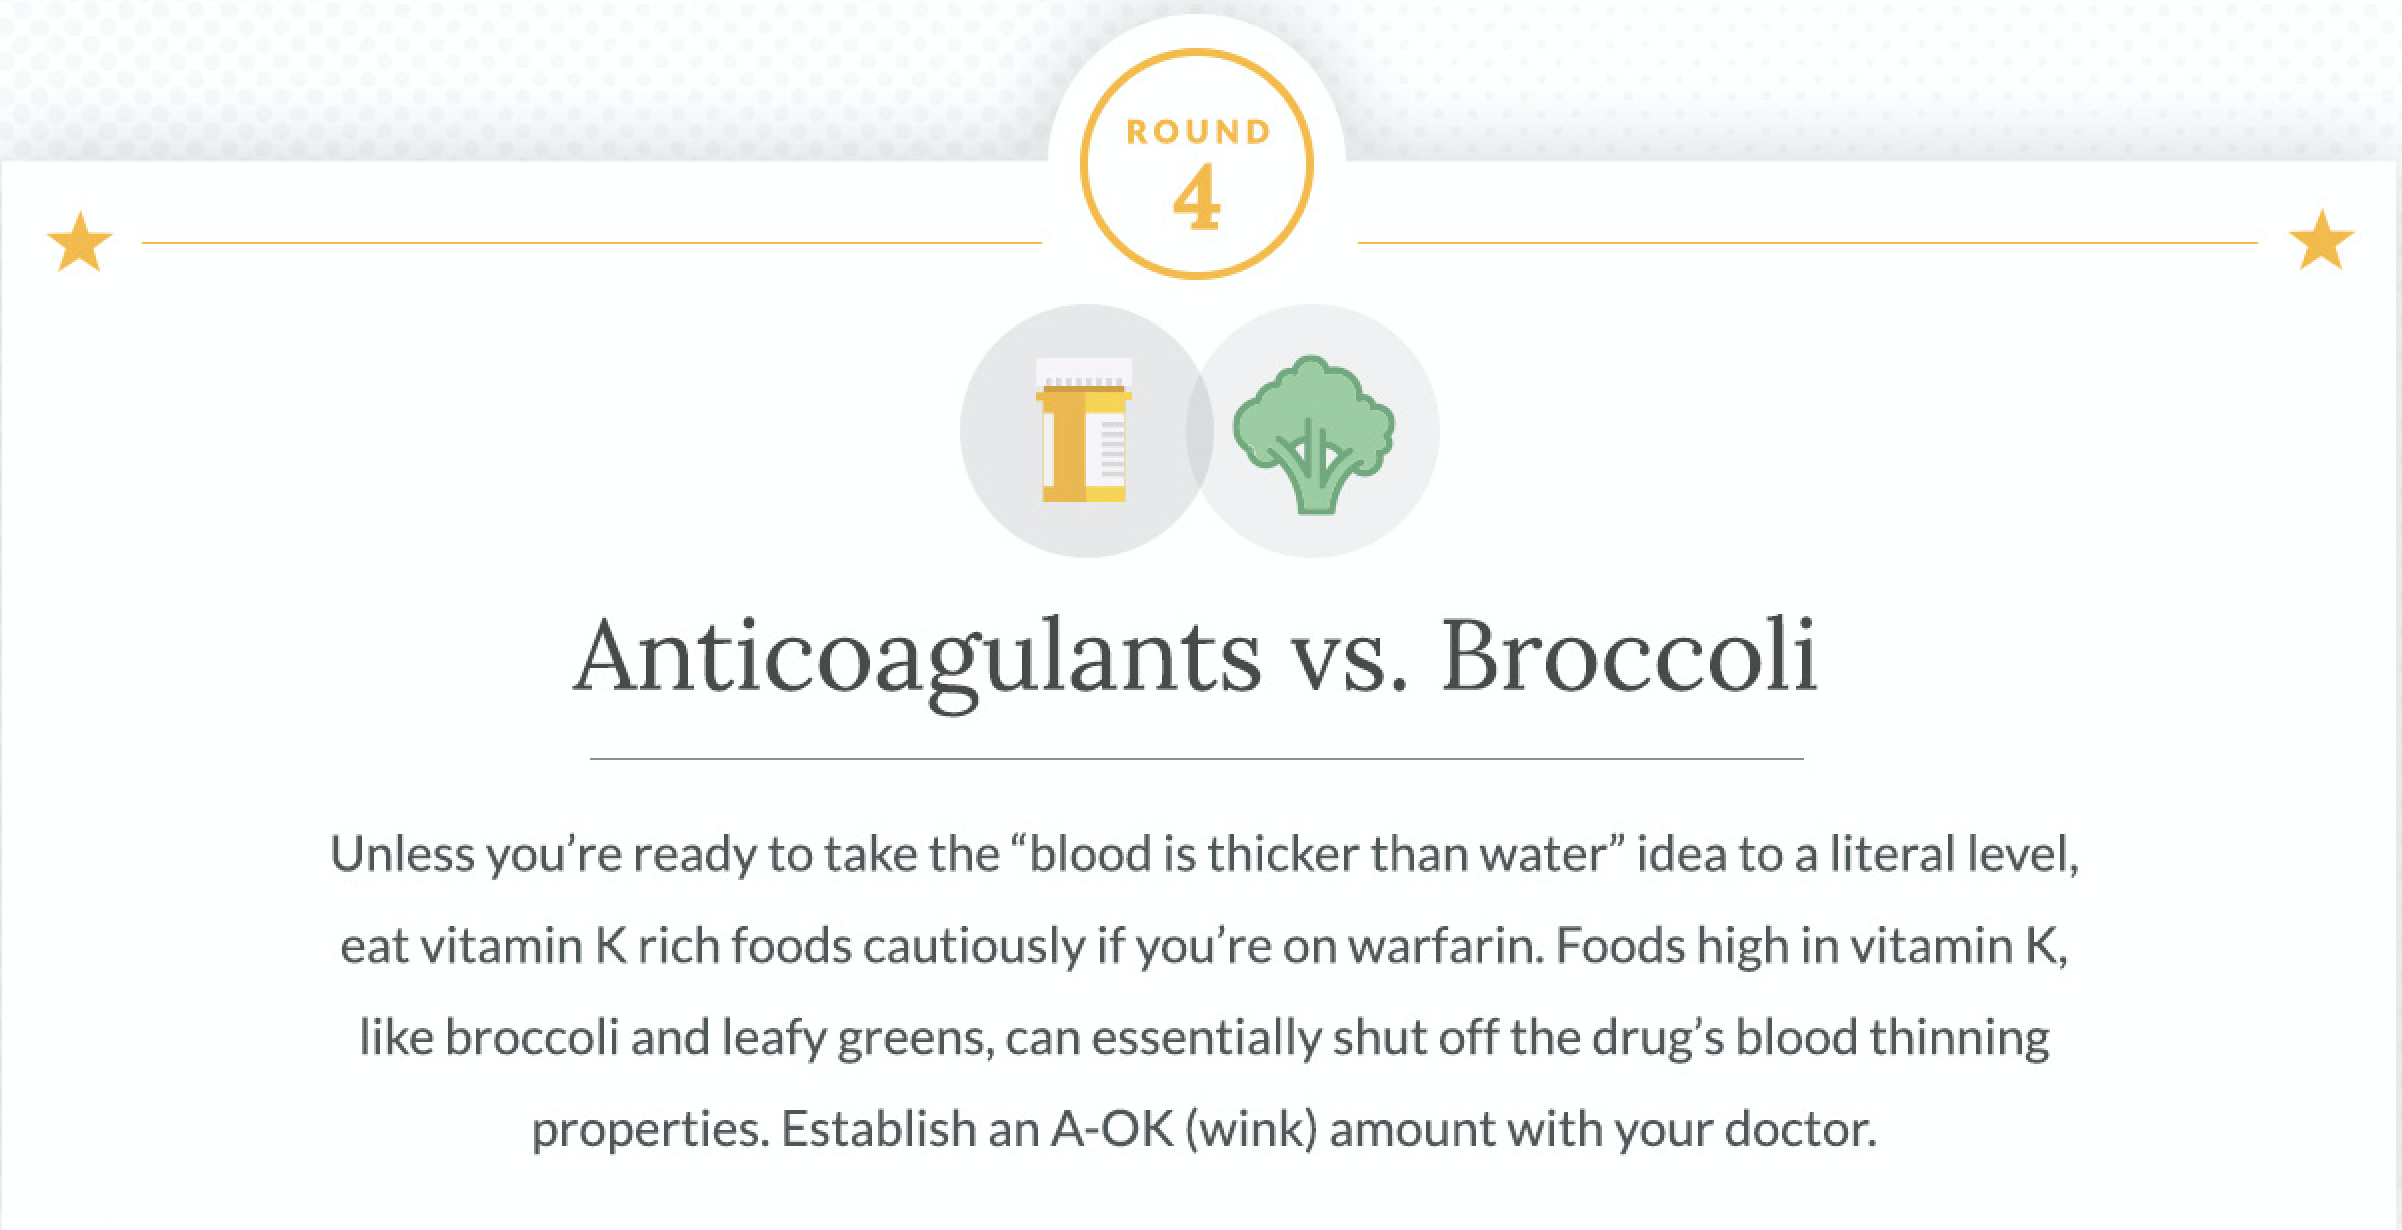 Anticoagulants and Broccoli